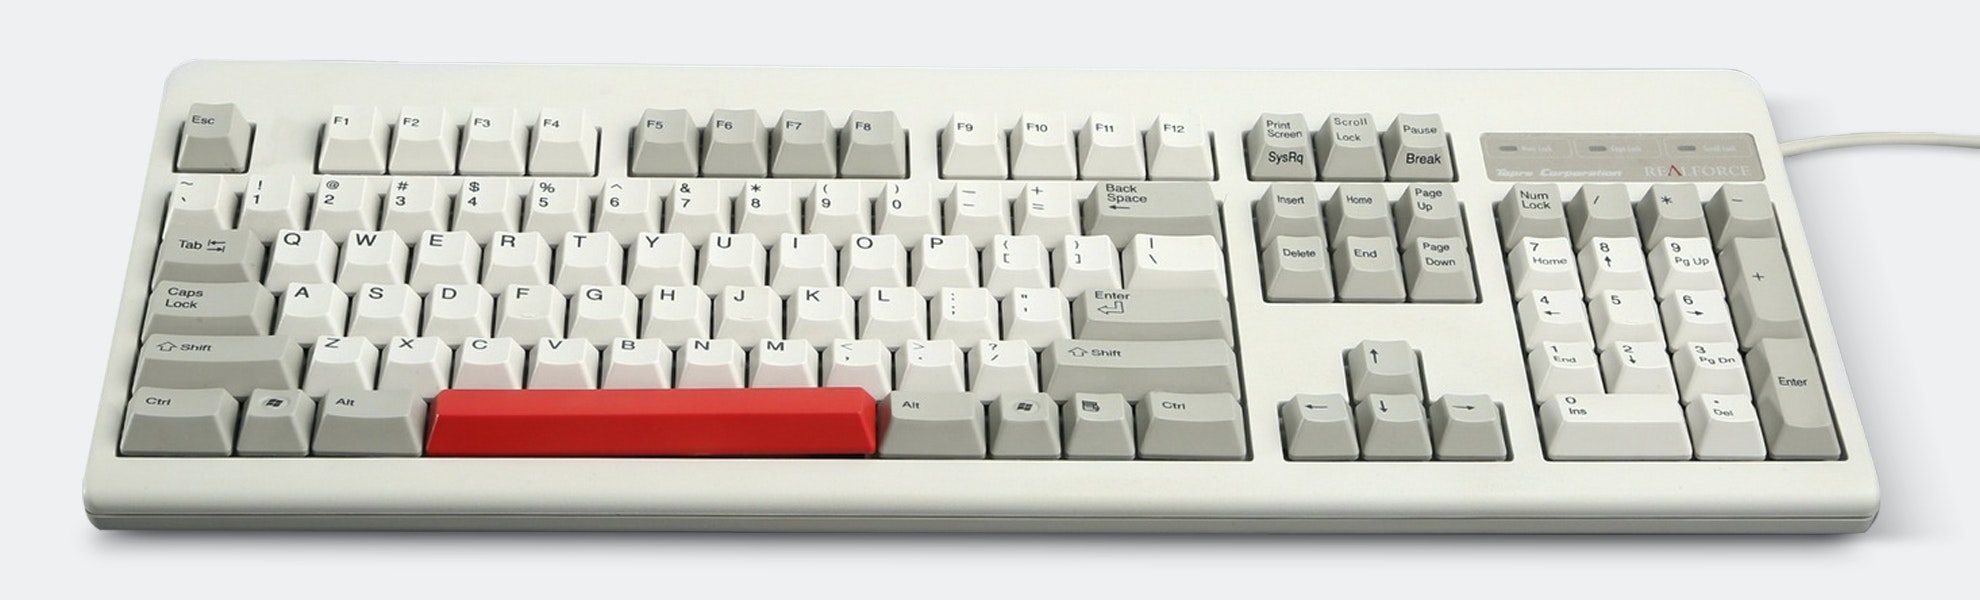 Topre Realforce 104U Keyboard with PBT Spacebars